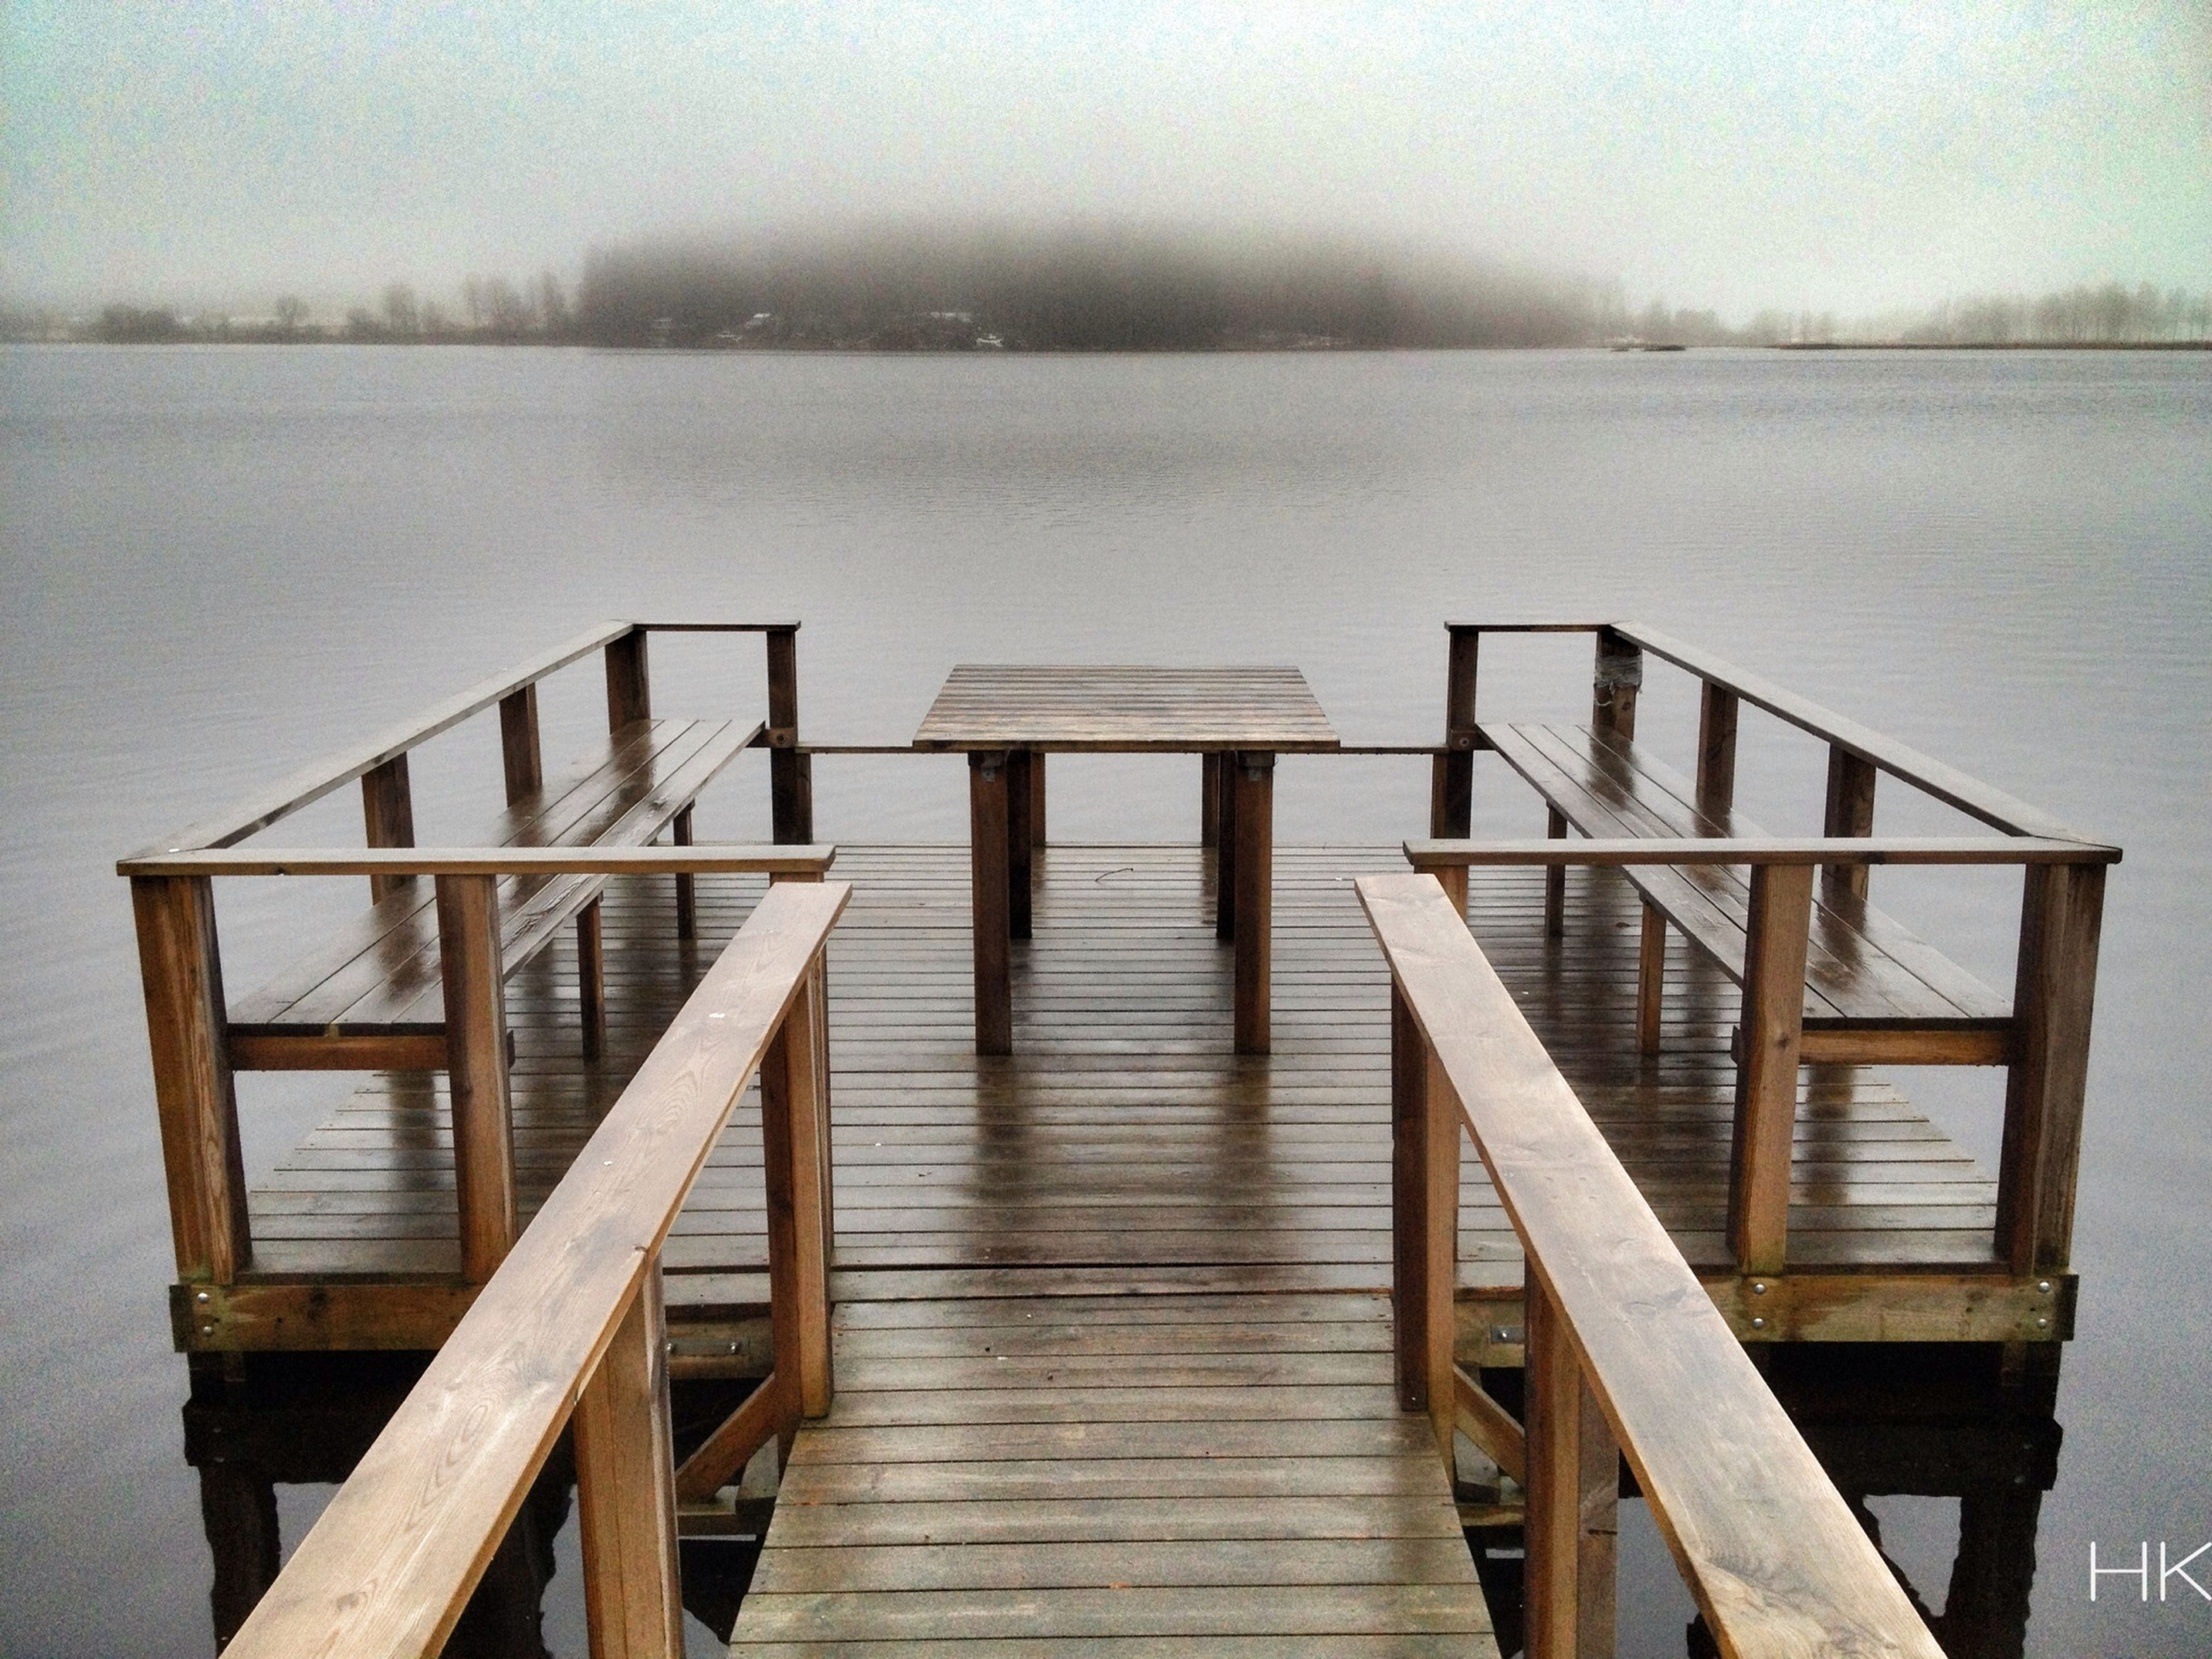 wood - material, pier, water, lake, tranquility, tranquil scene, railing, wooden, scenics, jetty, wood, nature, bench, empty, beauty in nature, boardwalk, sky, weather, wood paneling, non-urban scene